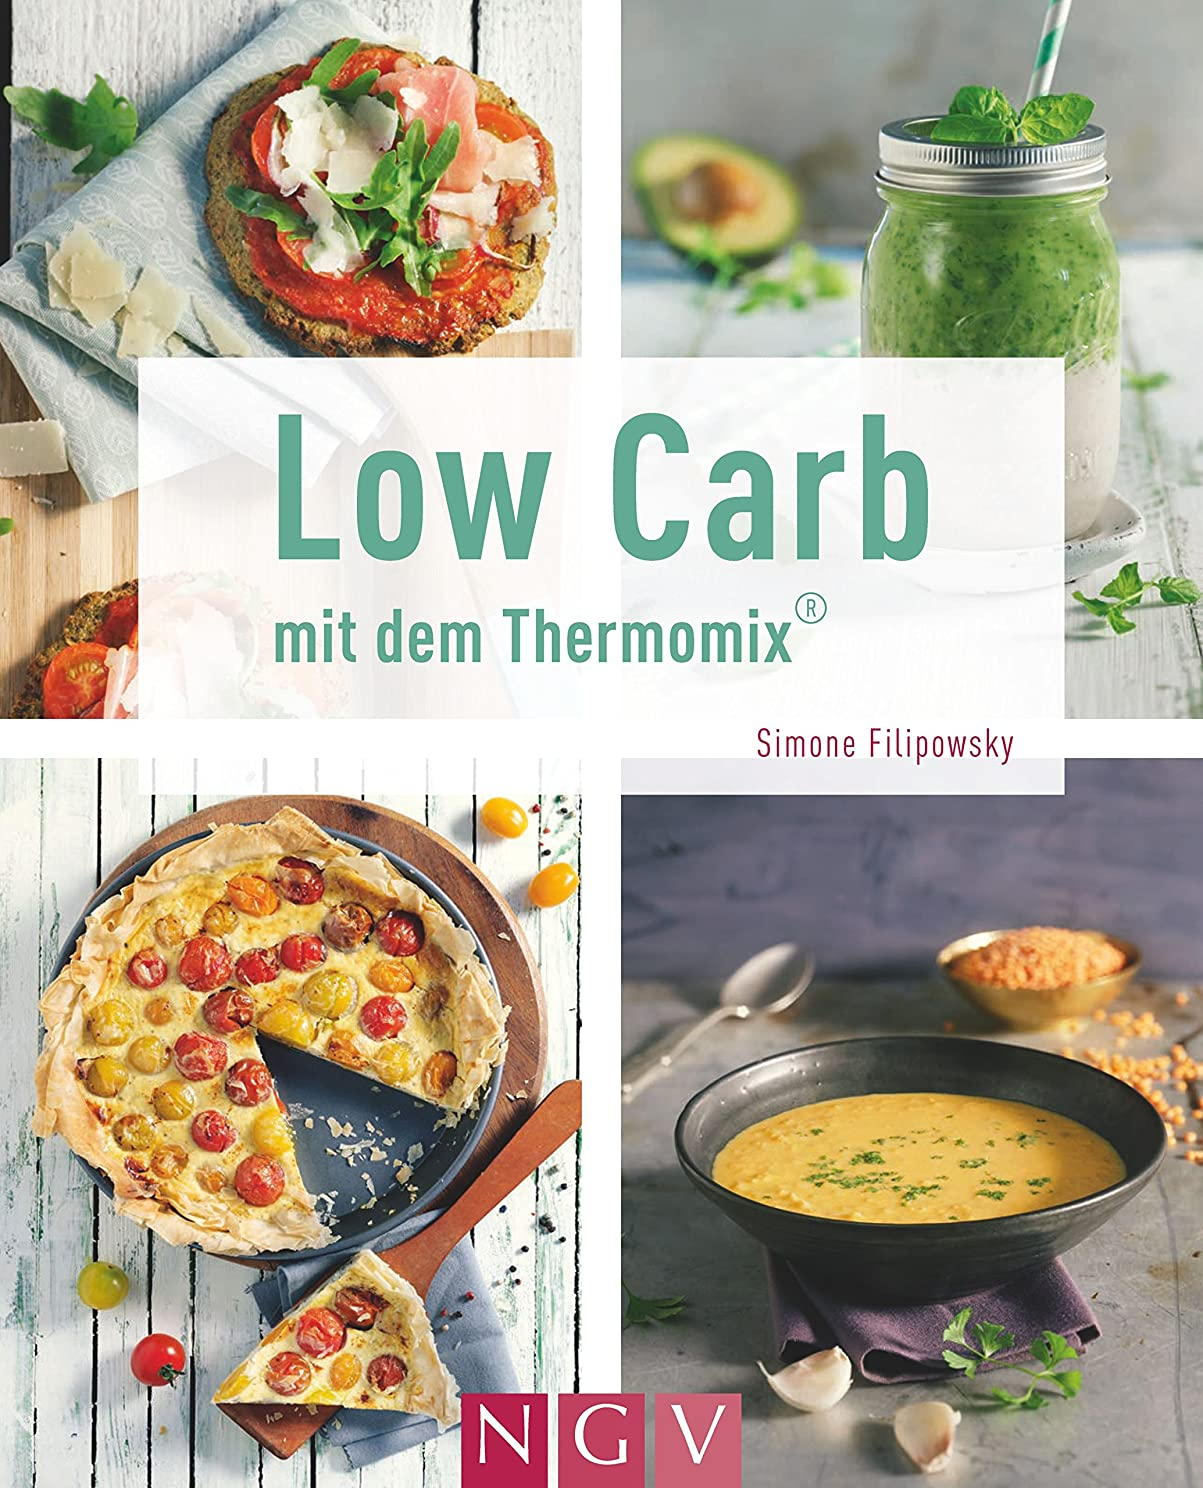 Low Carb mit dem Thermomix (German Edition)